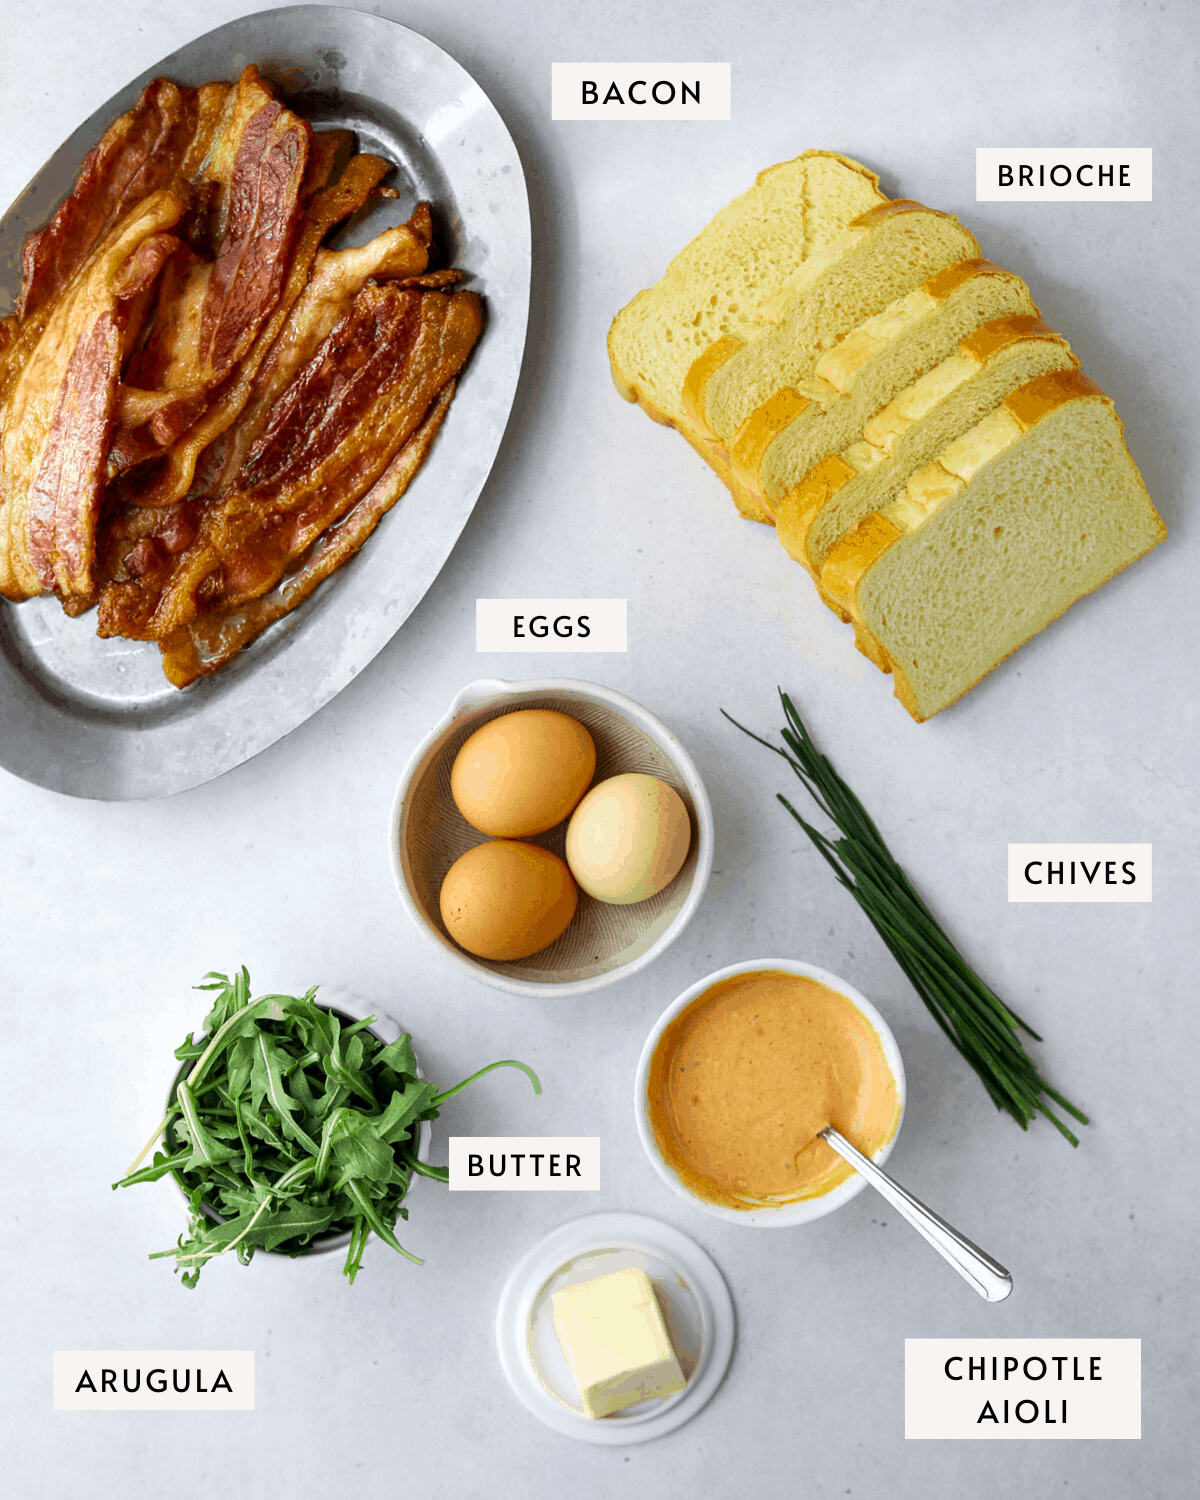 Brioche Breakfast Toast ingredients, cooked bacon, eggs, arugula, sliced brioche, aioli, chives and butter